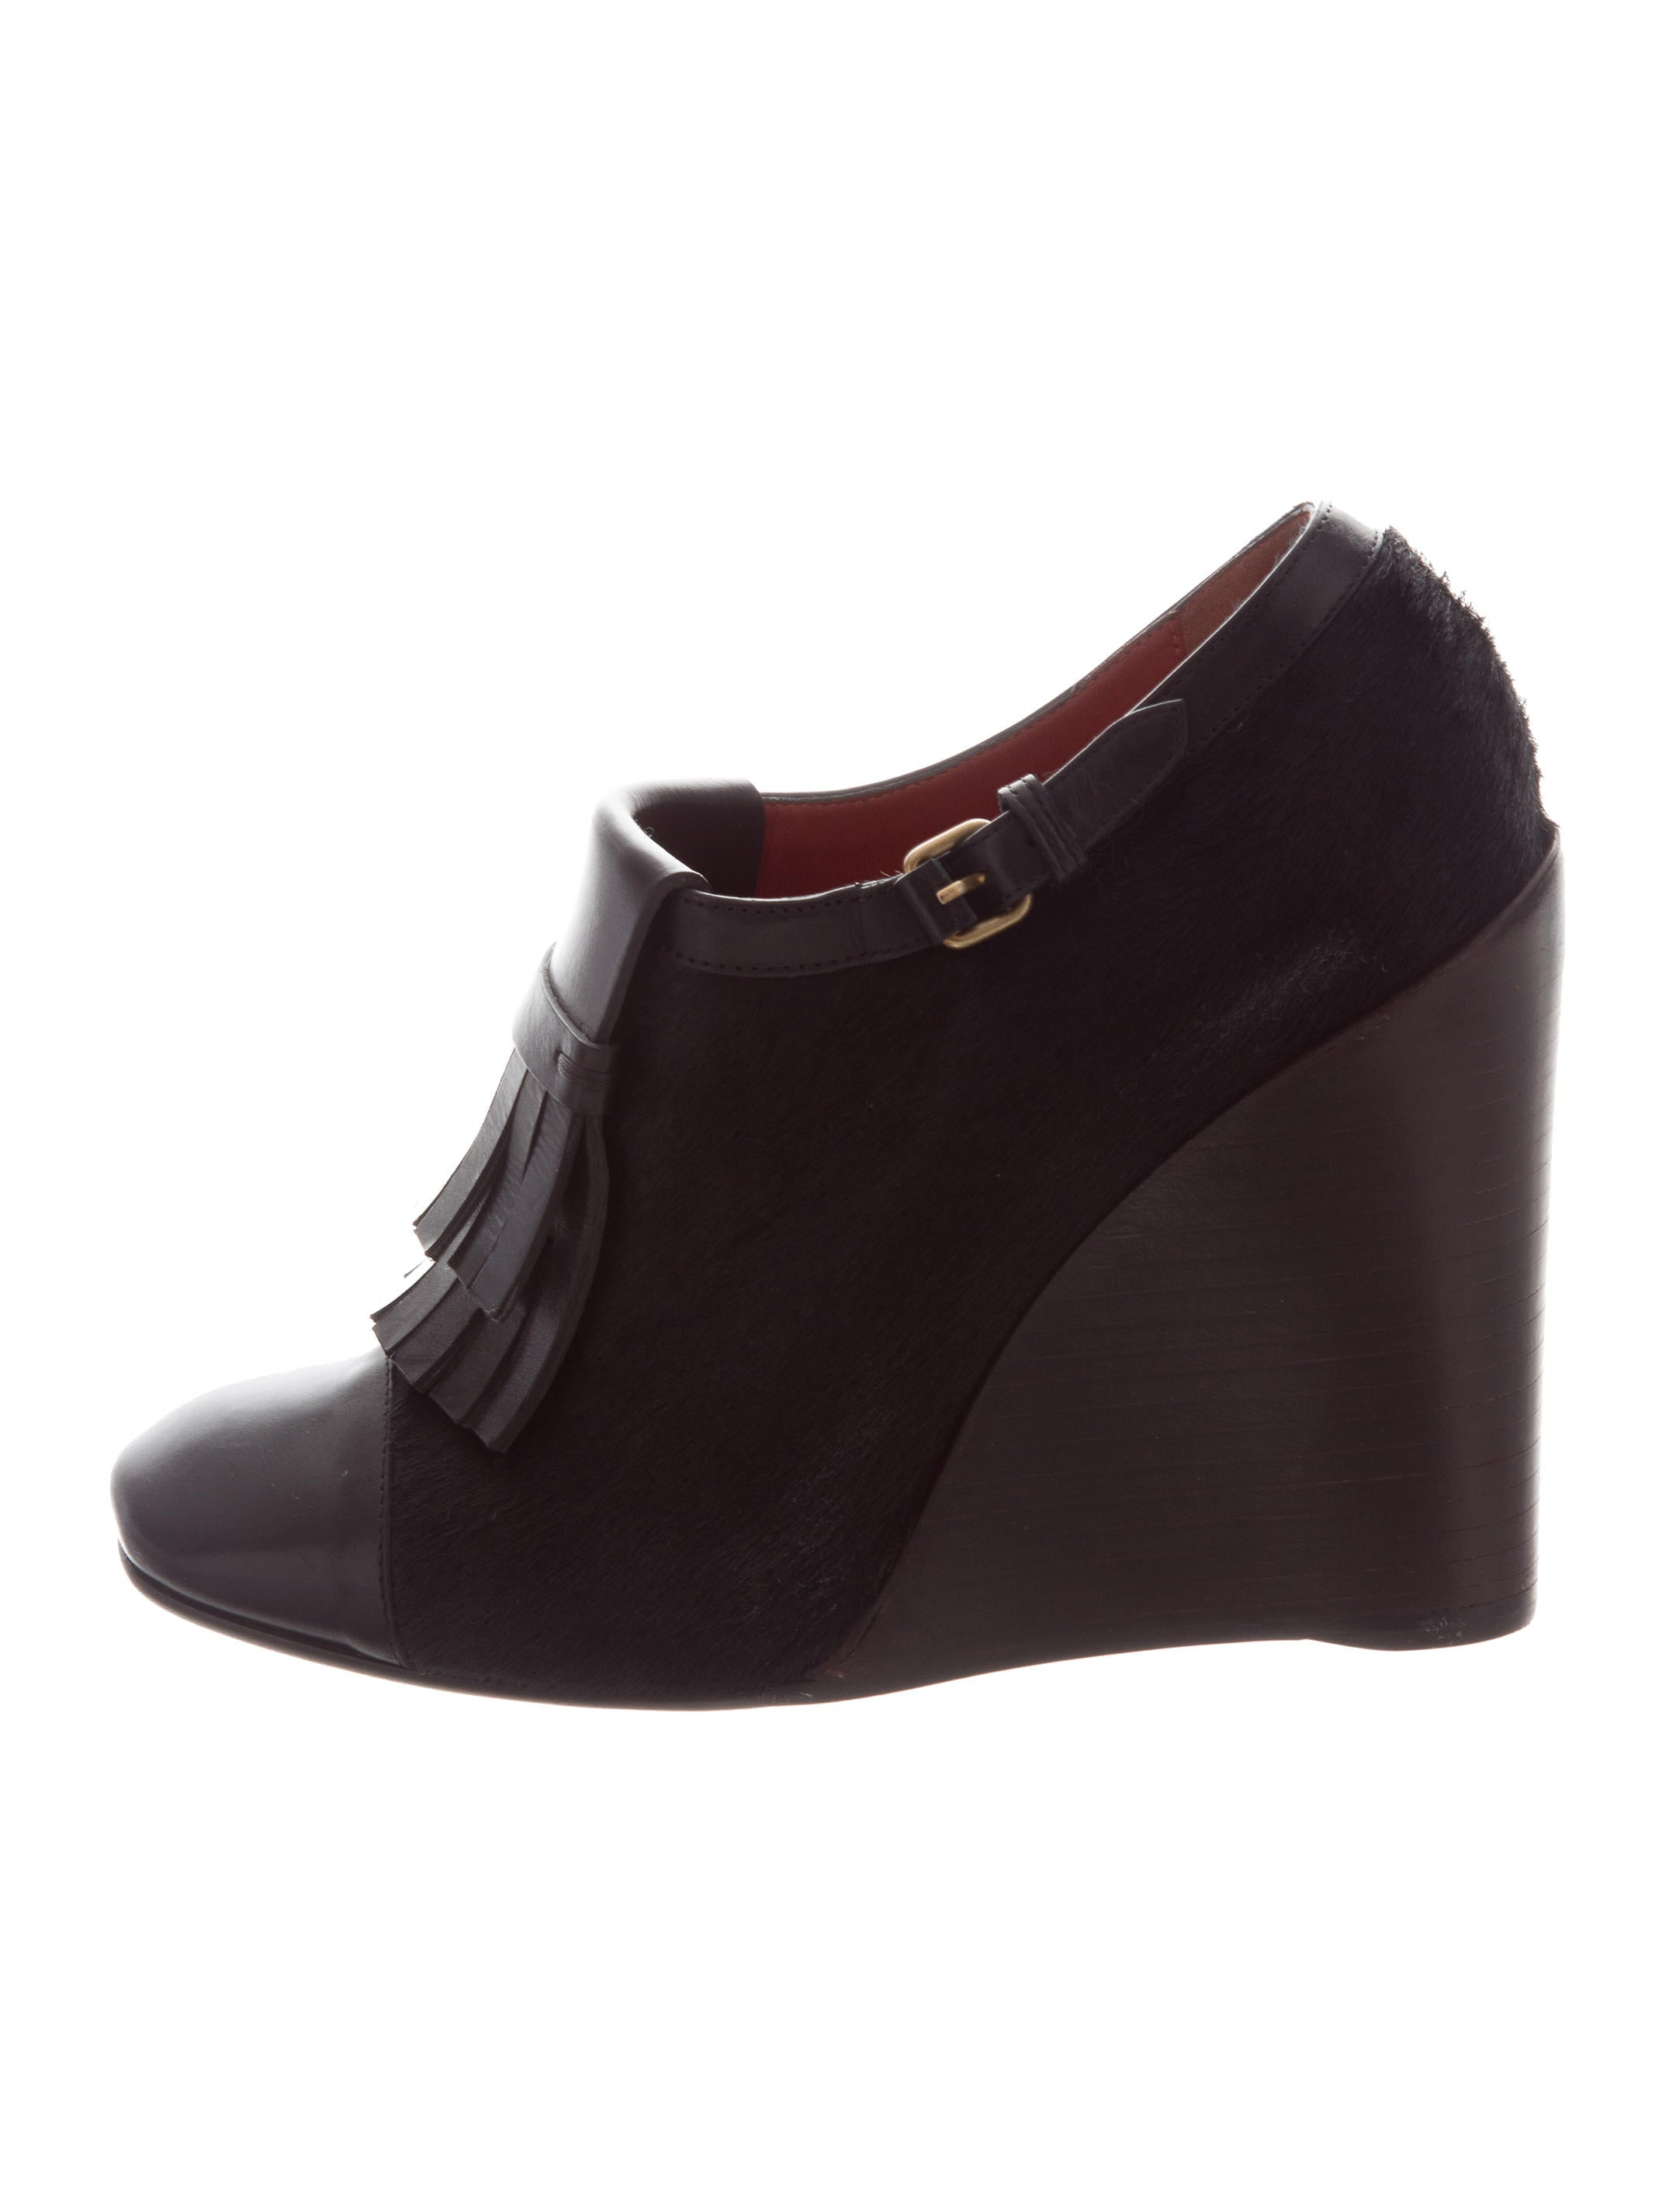 Marc by Marc Jacobs Ponyhair Kiltie Wedges best place to buy online buy cheap low price fee shipping buy cheap free shipping real online WhVa8v